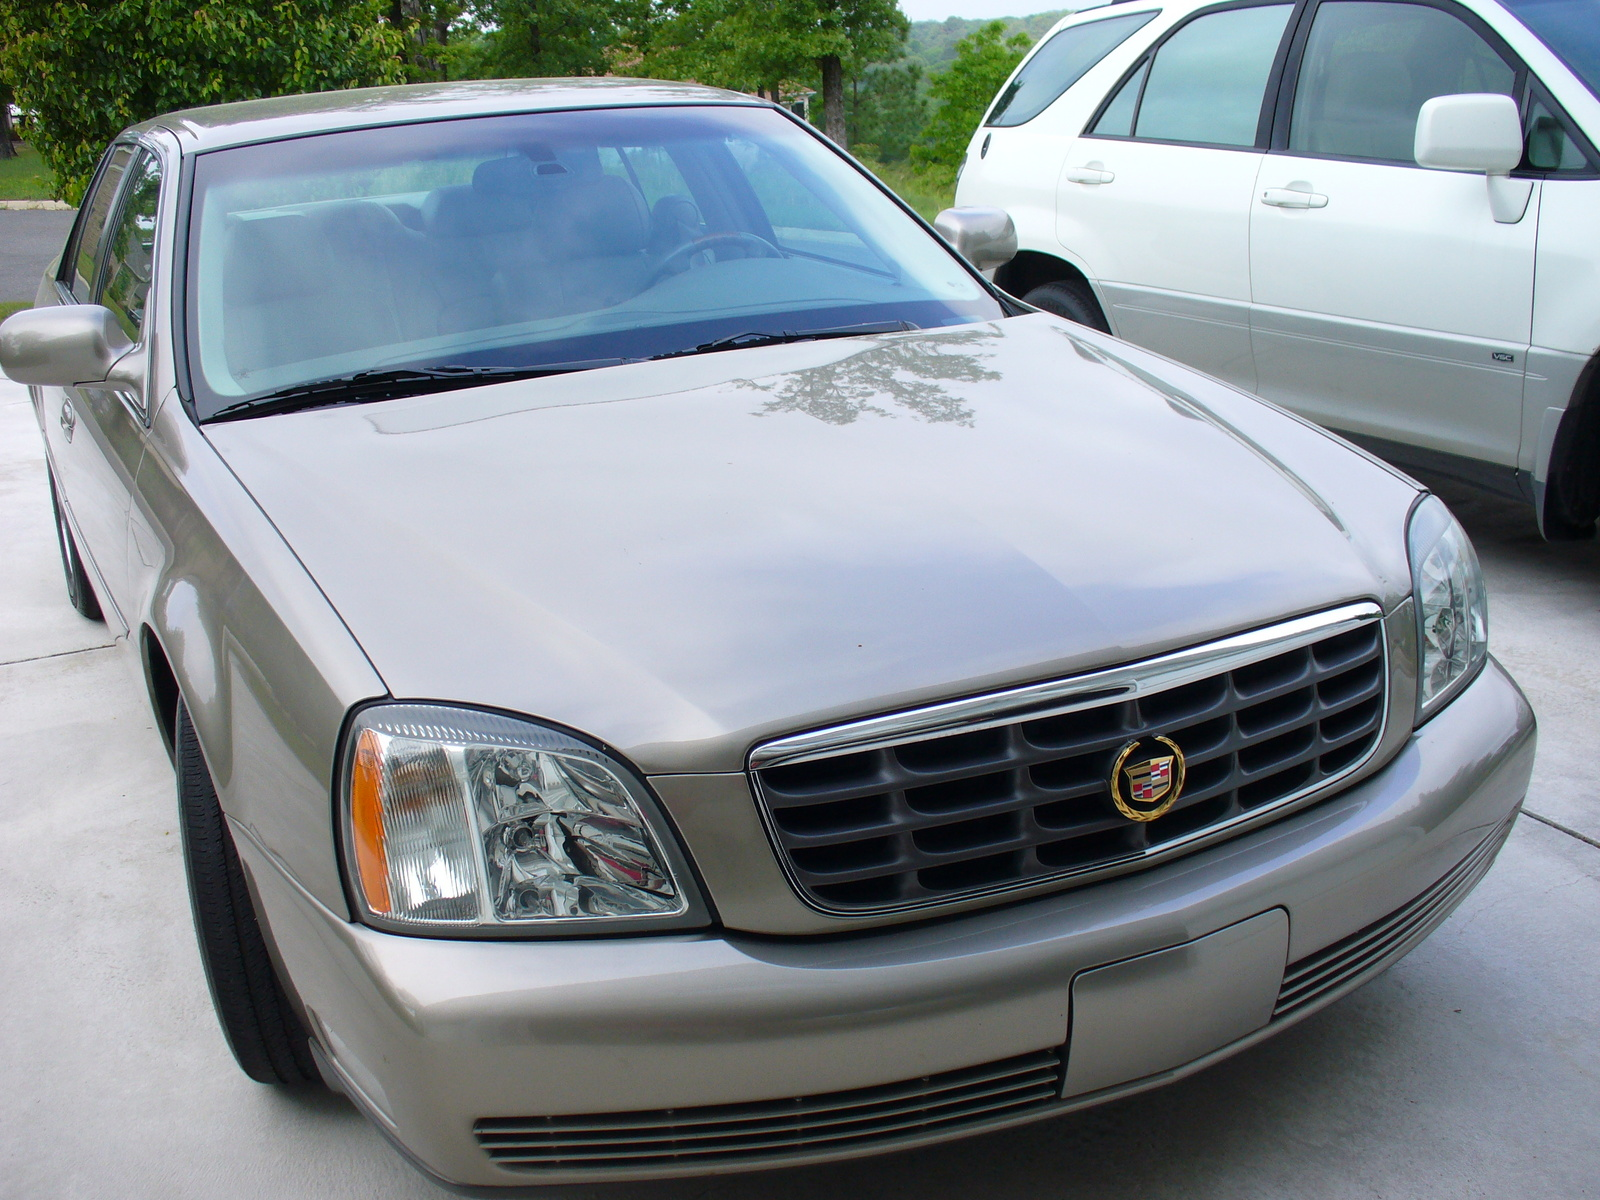 2004 cadillac deville pictures cargurus. Cars Review. Best American Auto & Cars Review